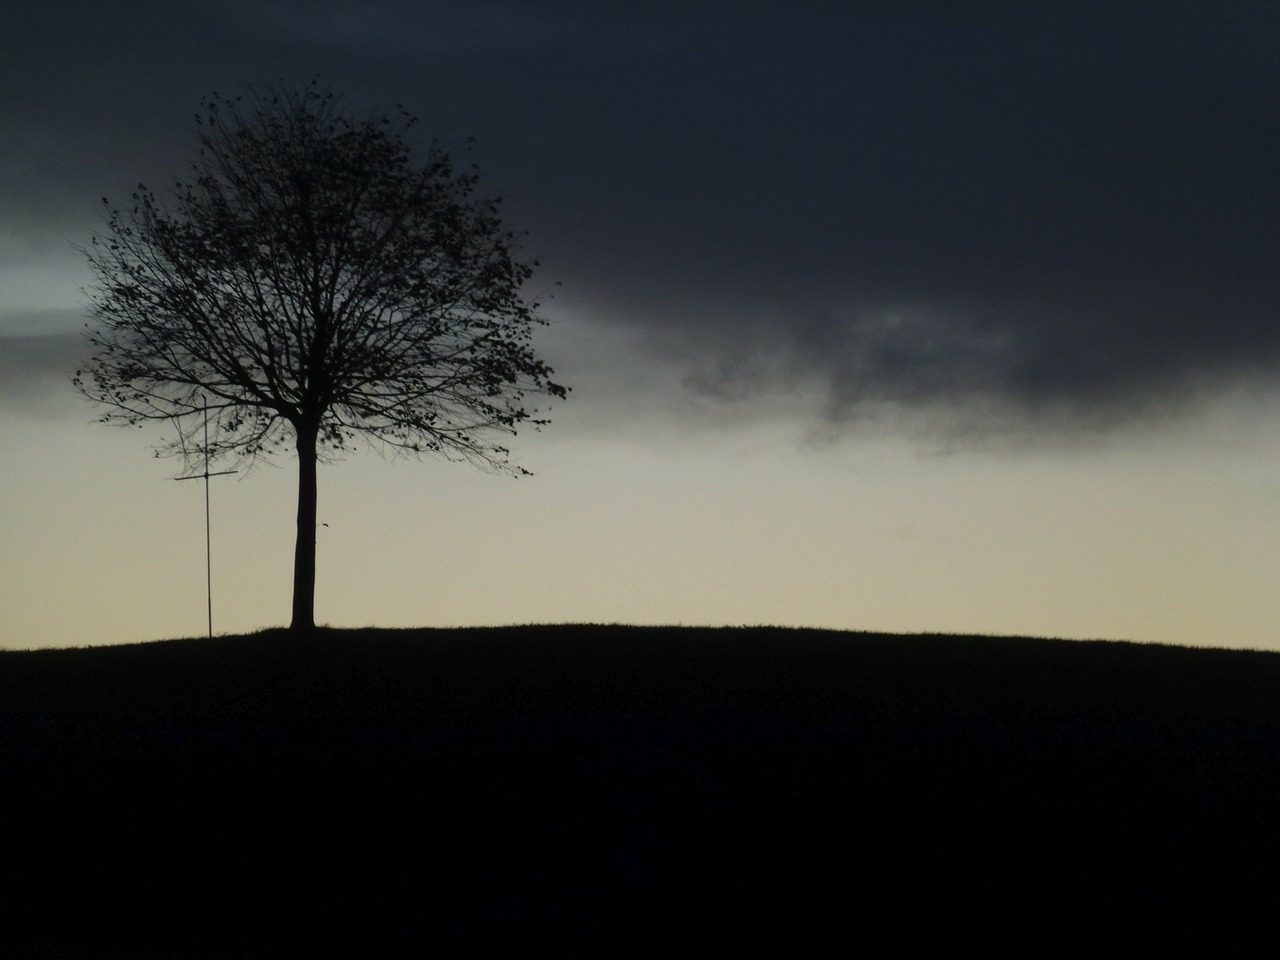 tree,landscape,fog,evening,free pictures, free photos, free images, royalty free, free illustrations, public domain